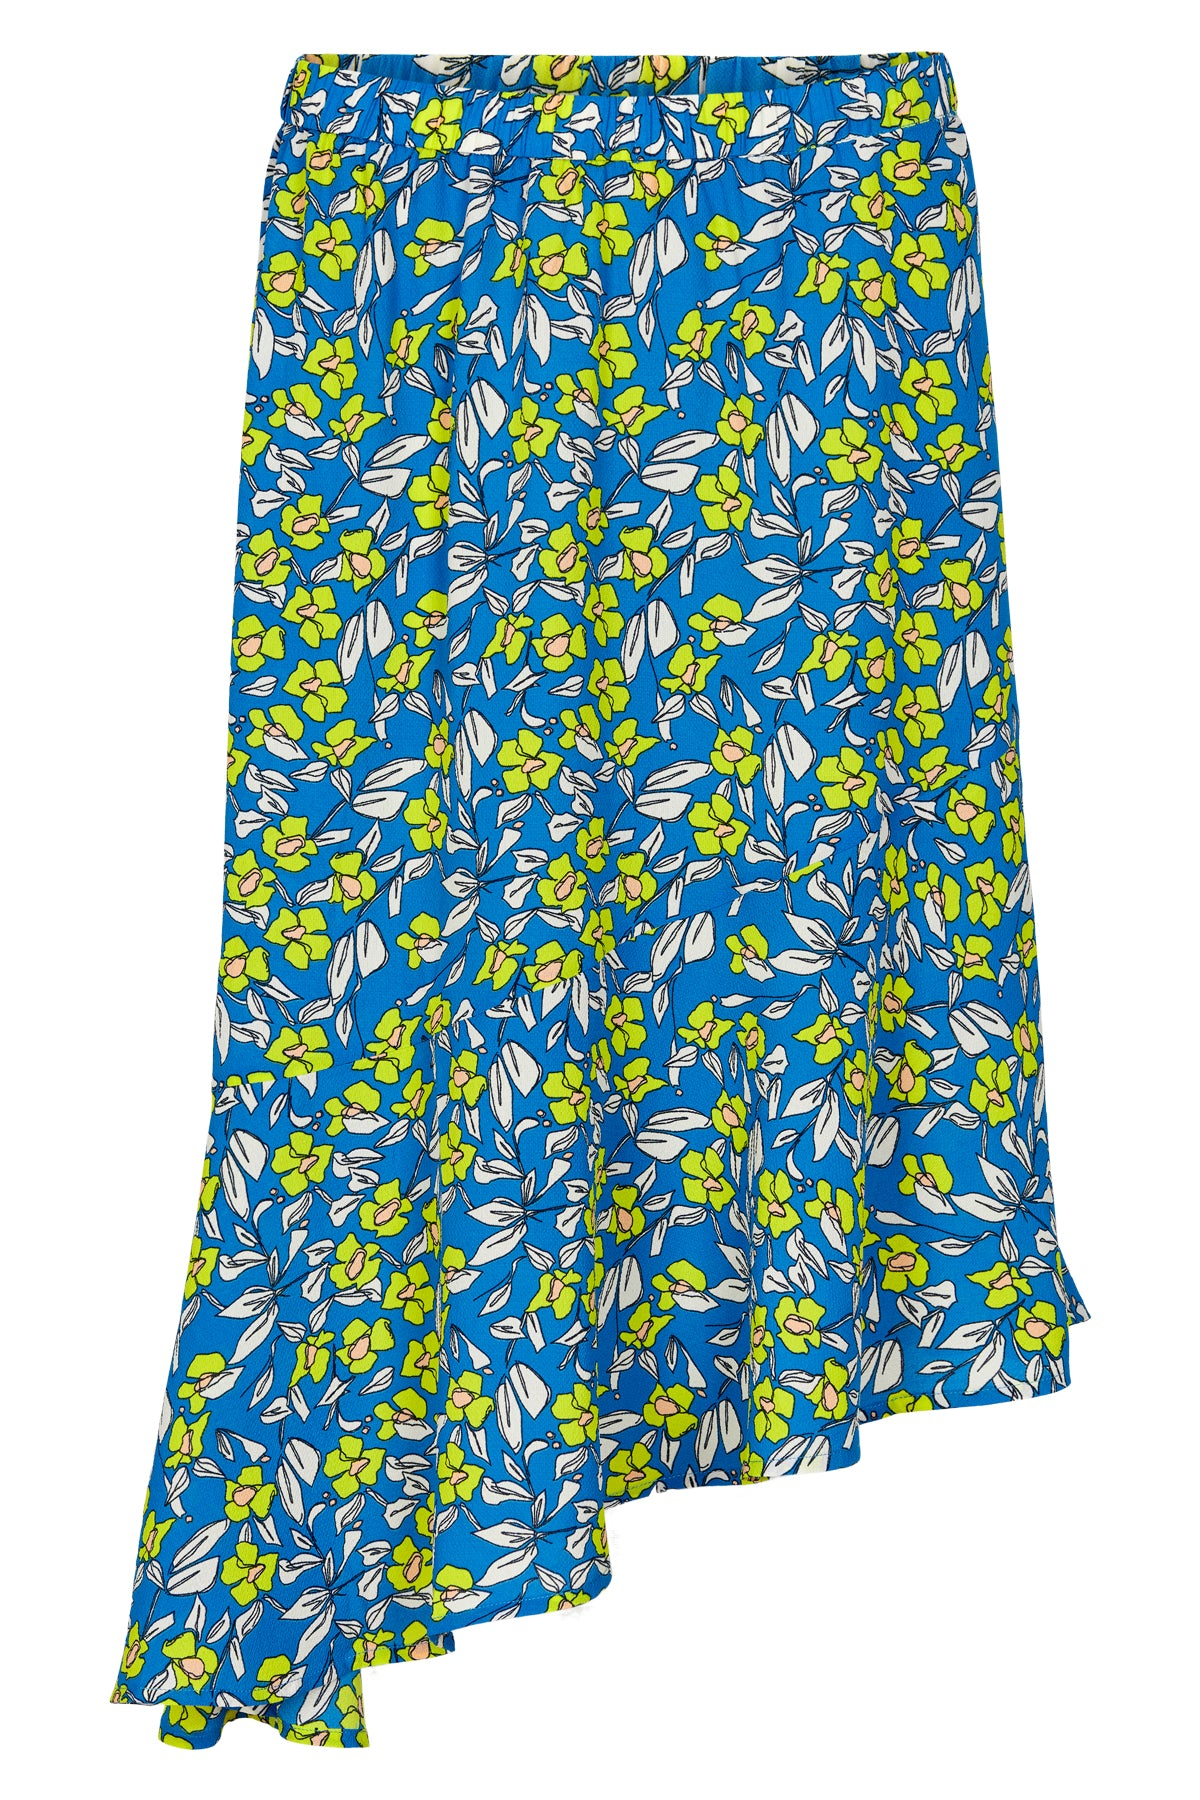 NÜMPH Nuaideen Skirt, blue